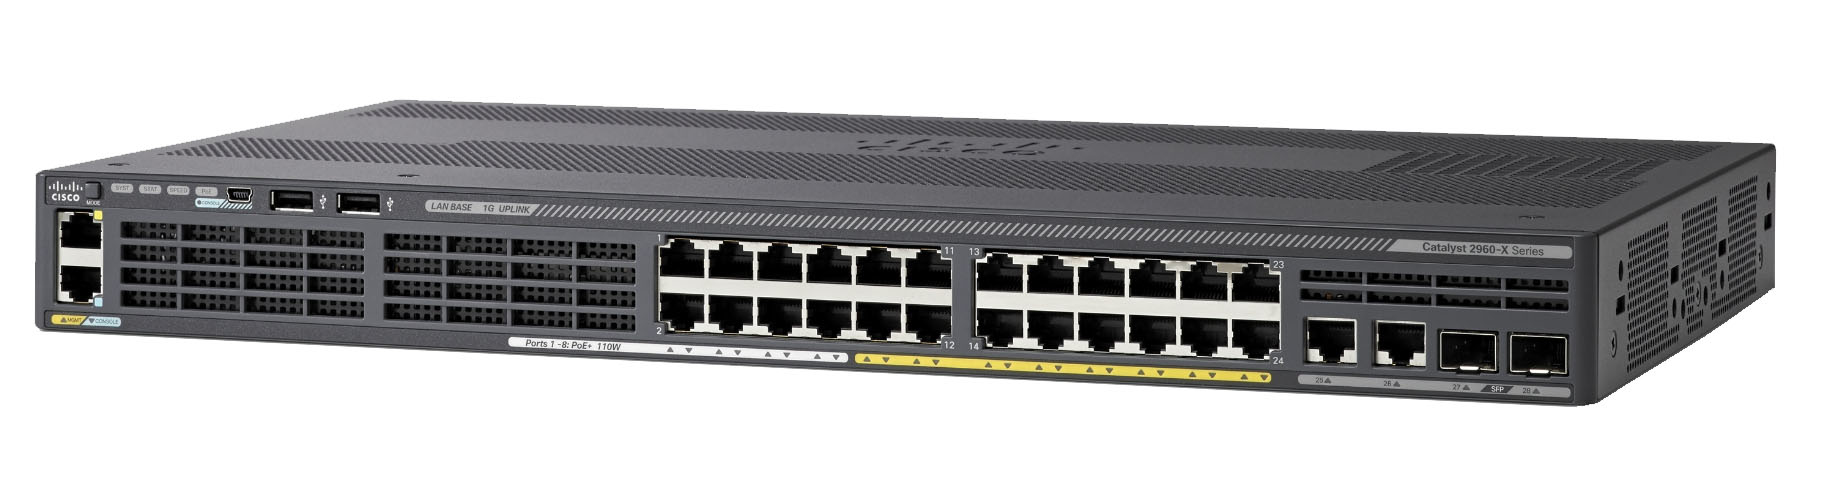 Cisco Catalyst 2960-X Managed L2/L3 Gigabit Ethernet (10/100/1000) Power over Ethernet (PoE) Black